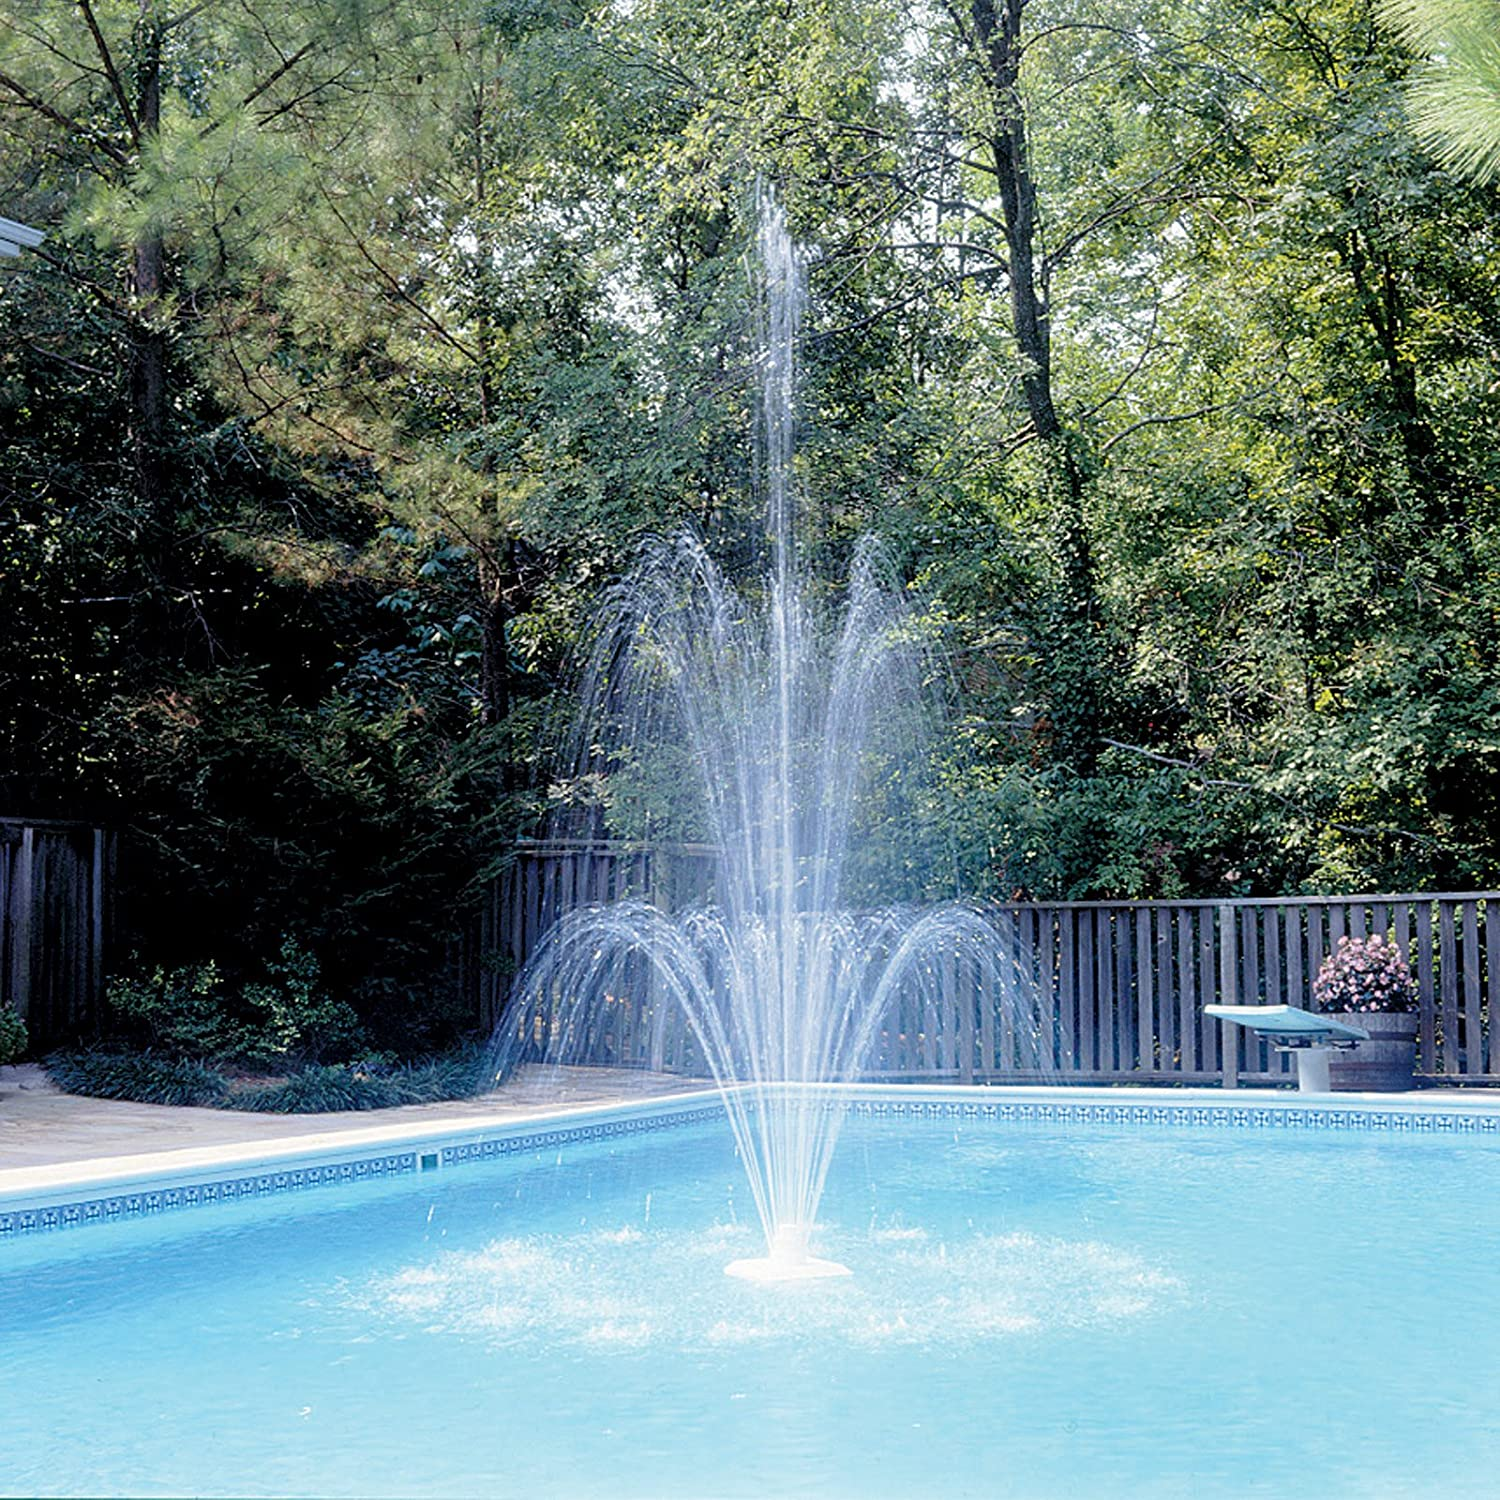 Swimming Pool Fountains Images Galleries With A Bite